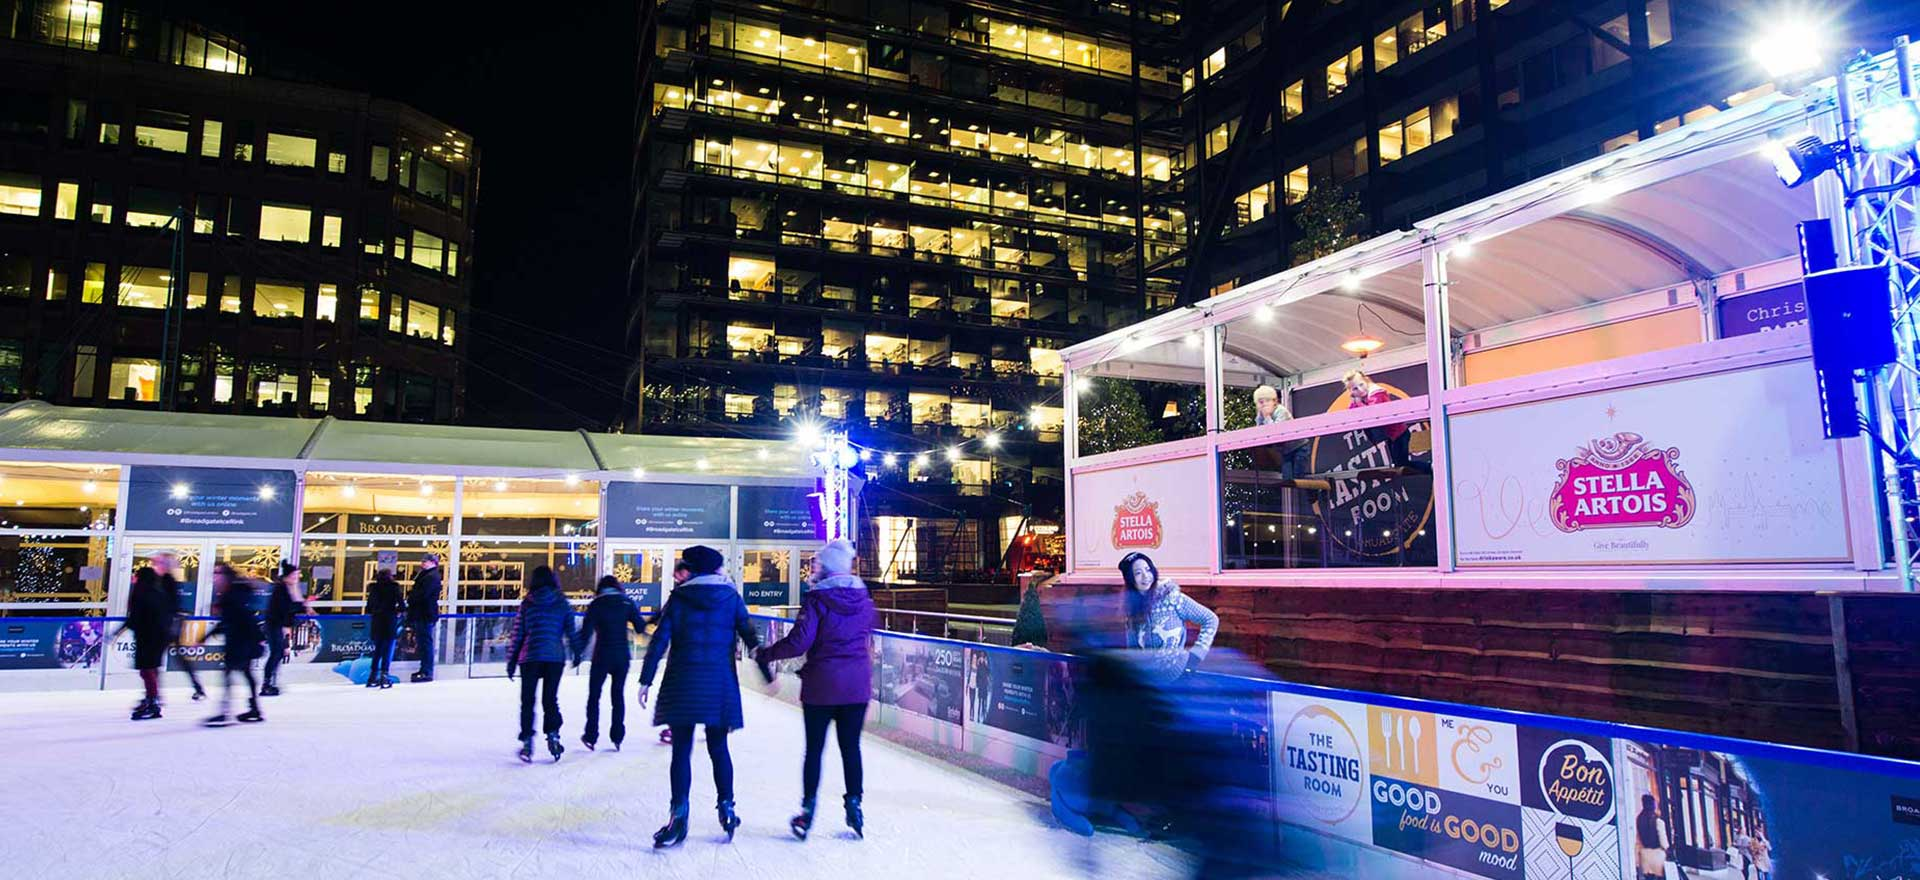 Ice rink with brand sponsership